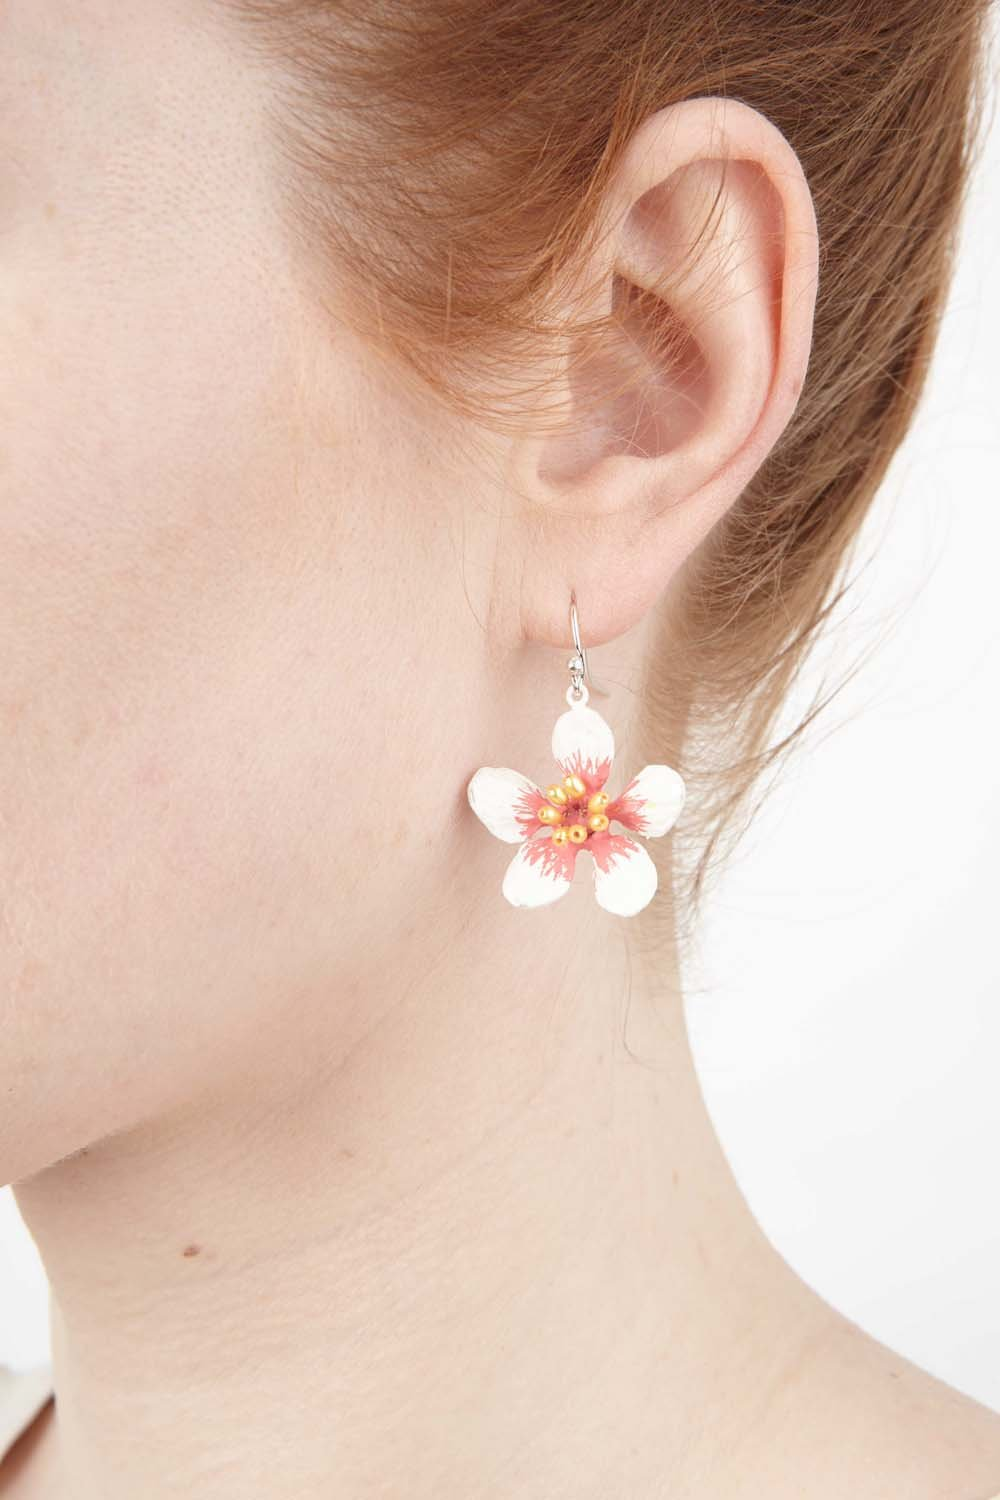 Almond Blossom Earrings - Wire